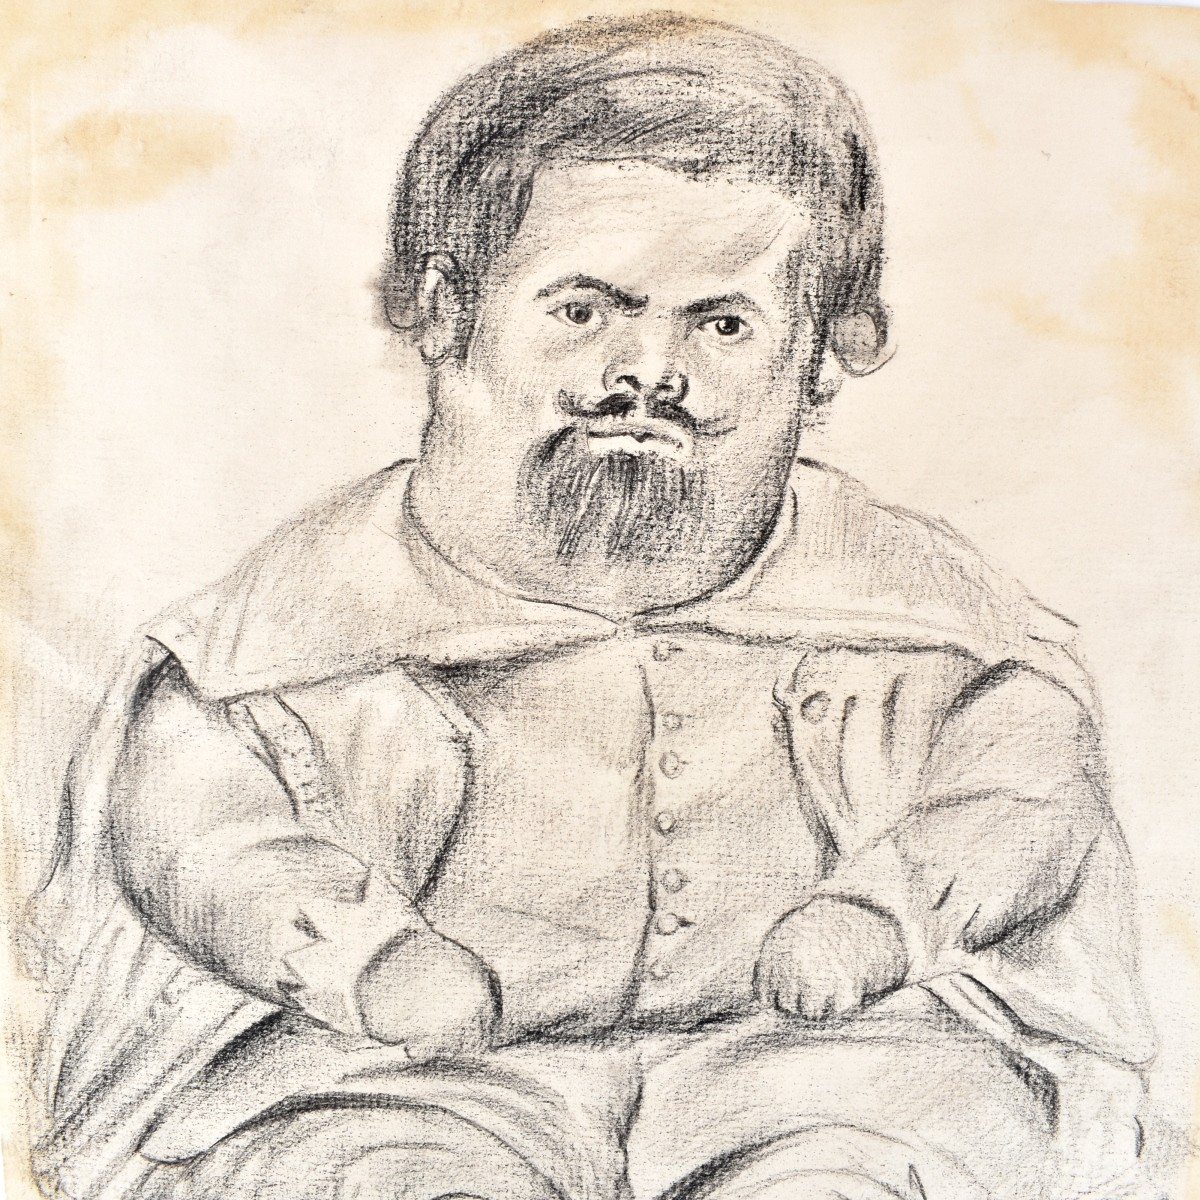 Possibly: Fernando Botero (born 1932) Sketch